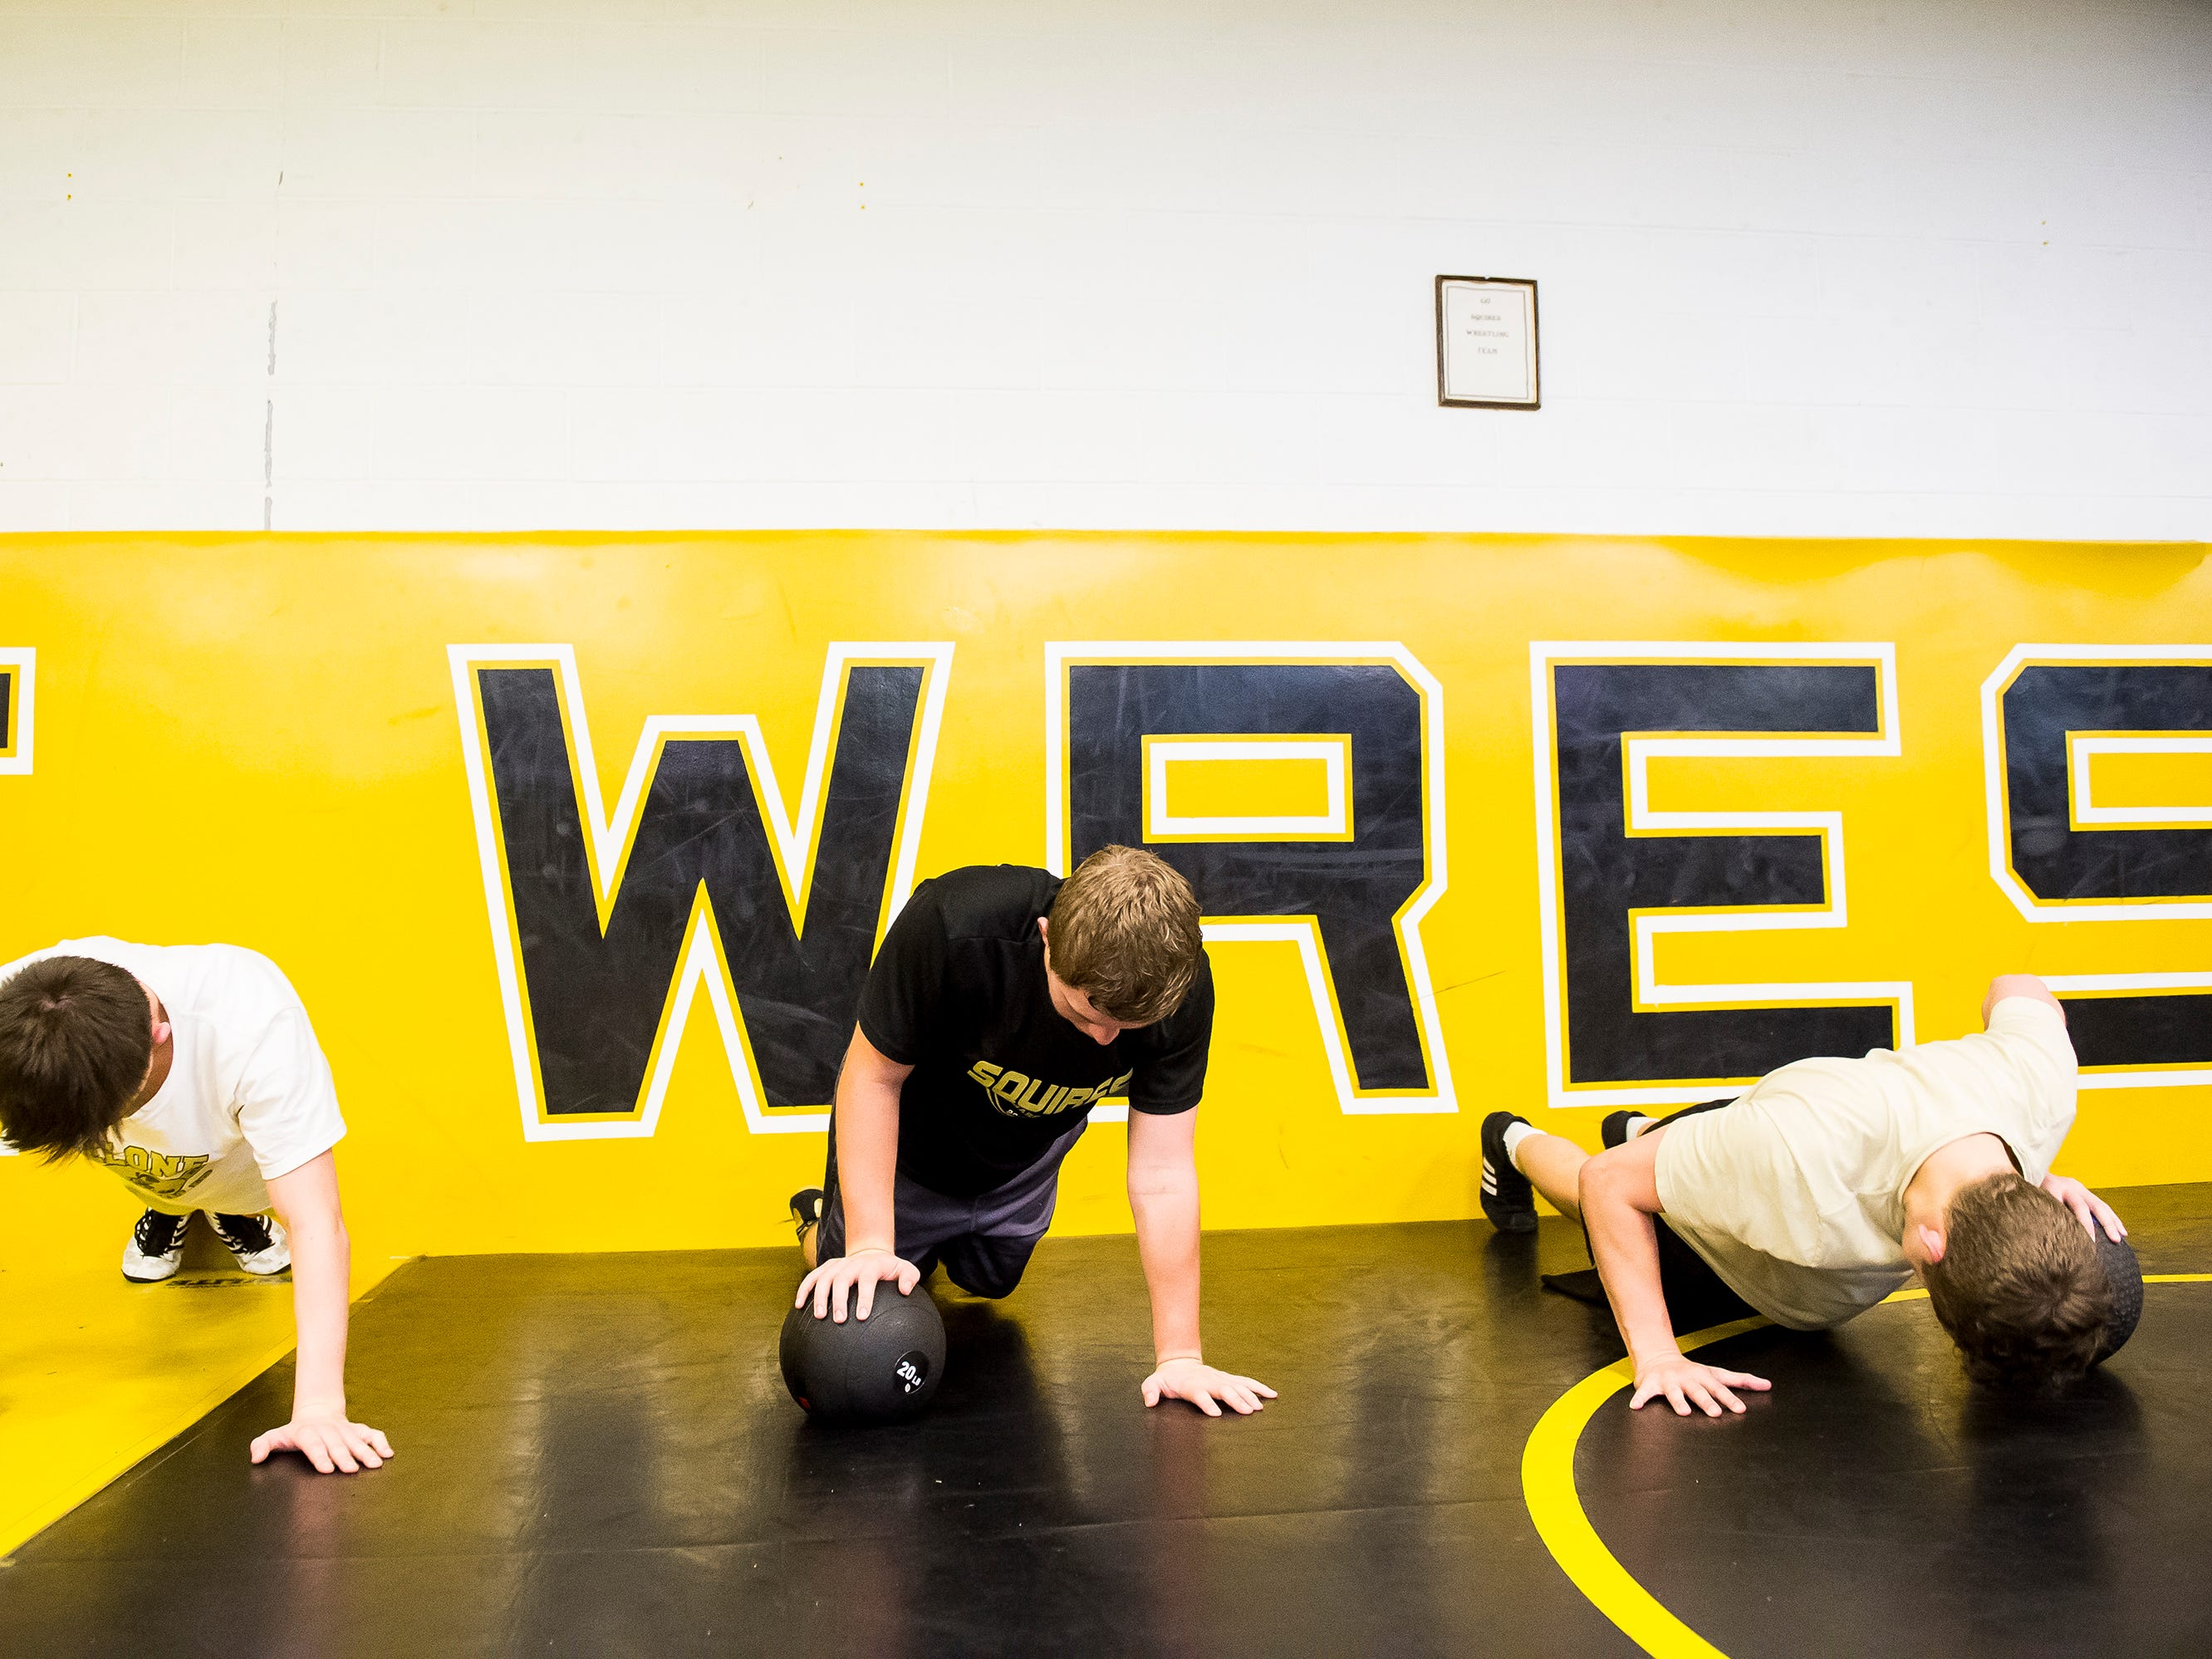 Delon Catholic wrestlers do one arm push-ups during the first official day of winter sports practice on Friday, November 16, 2018.